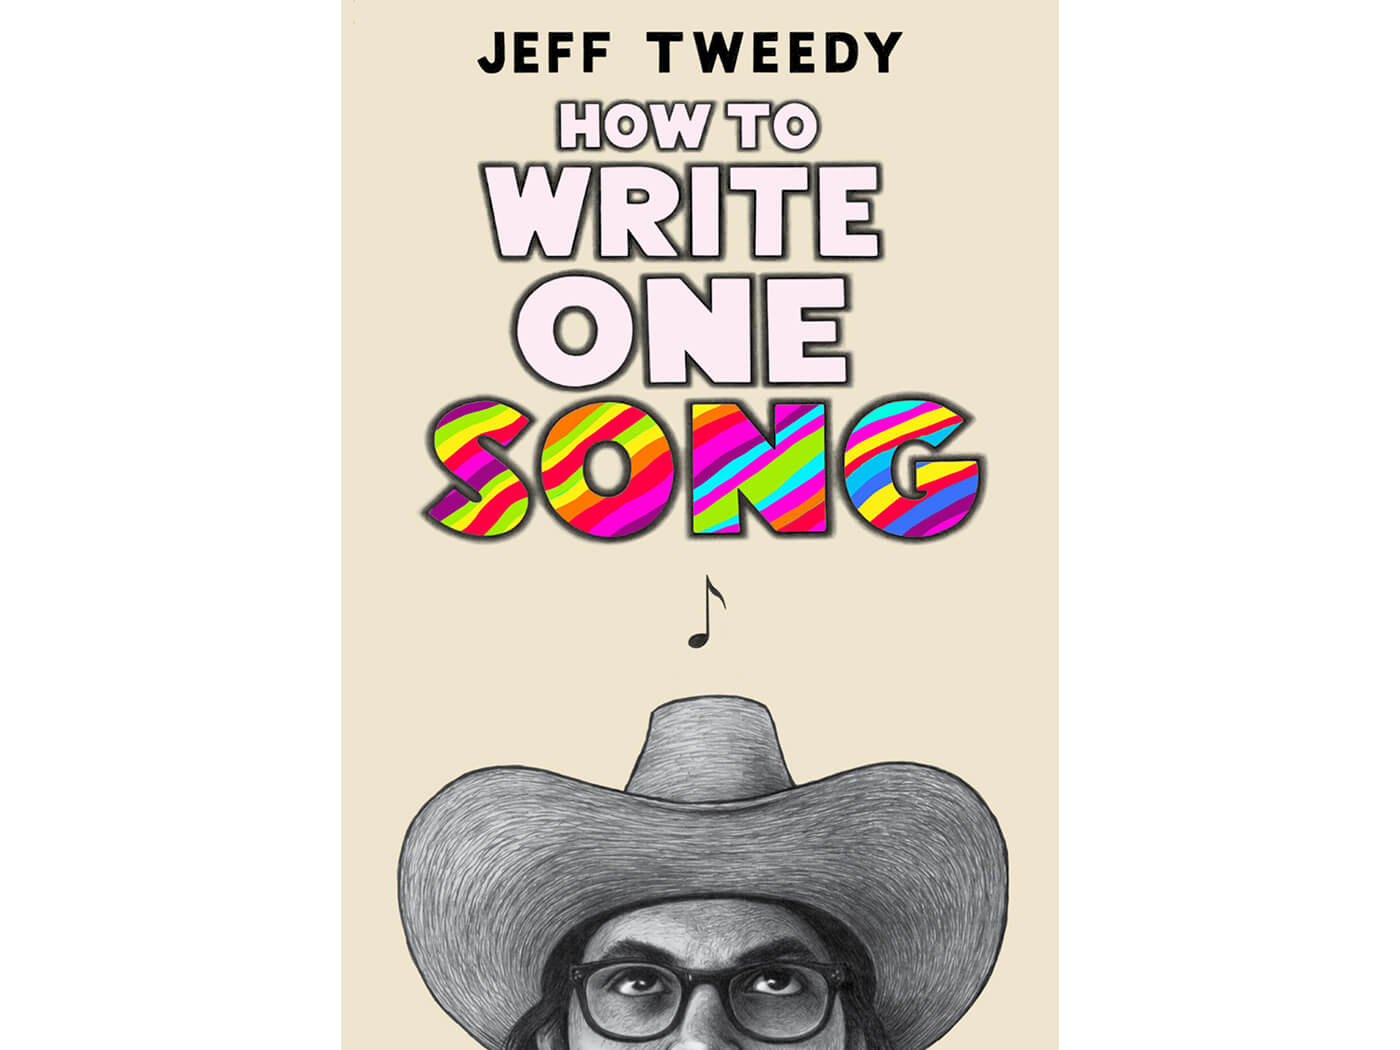 Jeff Tweedy to share his songwriting tips in new book